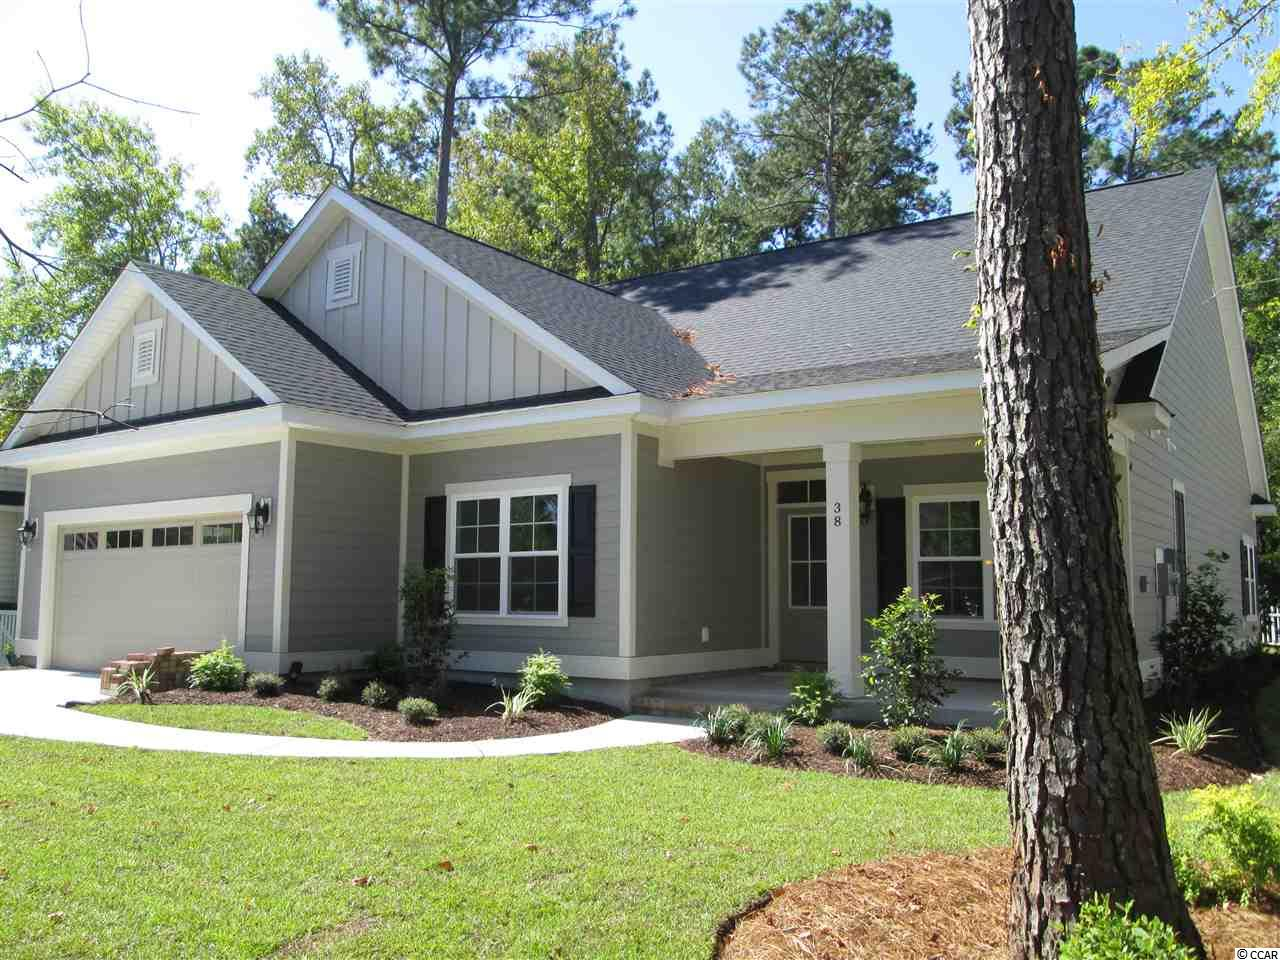 "New Construction Home that will be ready MID SEPTEMBER in the popular Ricefields Plantation Neighborhood in Pawley's Island.  This One Level Home with Bonus Room is nestled onto a wooded lot and offers 3 Bedrooms, 2 Full Bathrooms, Formal Dining Room and an Open Kitchen/Breakfast Nook/Living Area all on the first floor.  The Kitchen features a spacious center island and large walk-in pantry with Butler's Pantry.  The easy flow of this home is perfect for every day living as well as hosting large gatherings.  The Living Area is spacious with a fireplace along with easy access from the living/dining/kitchen to the rear covered porch.  The bedrooms are of a split design with the Master Bedroom being located on the rear of the home and features a large walk-in closet.  The generous size Master Bath features double vanity, large walk in tile shower and separate separate water closet.  Both additional bedrooms are a minimum of 12 x 12 in size with the 2nd bedroom featuring a large walk in closet as well. Upstairs you will find a very spacious Bonus Room generous sized light storage closet. Residents of Ricefields Plantation can enjoy use of the Neighborhood Pool, River Walk and Tidal Boat Ramp with Intracoastal Waterway access. Golf Carts are allowed in the Community and also feature sidewalks for community walking.  Ricefields Plantation is convenient to top notch golf such as ""Caledonia"" which is located next to the neighborhood.  It is convenient to the family fun in Myrtle Beach, Restaurants in The Marsh Walk in Murrells Inlet and is just a short drive to Charleston."